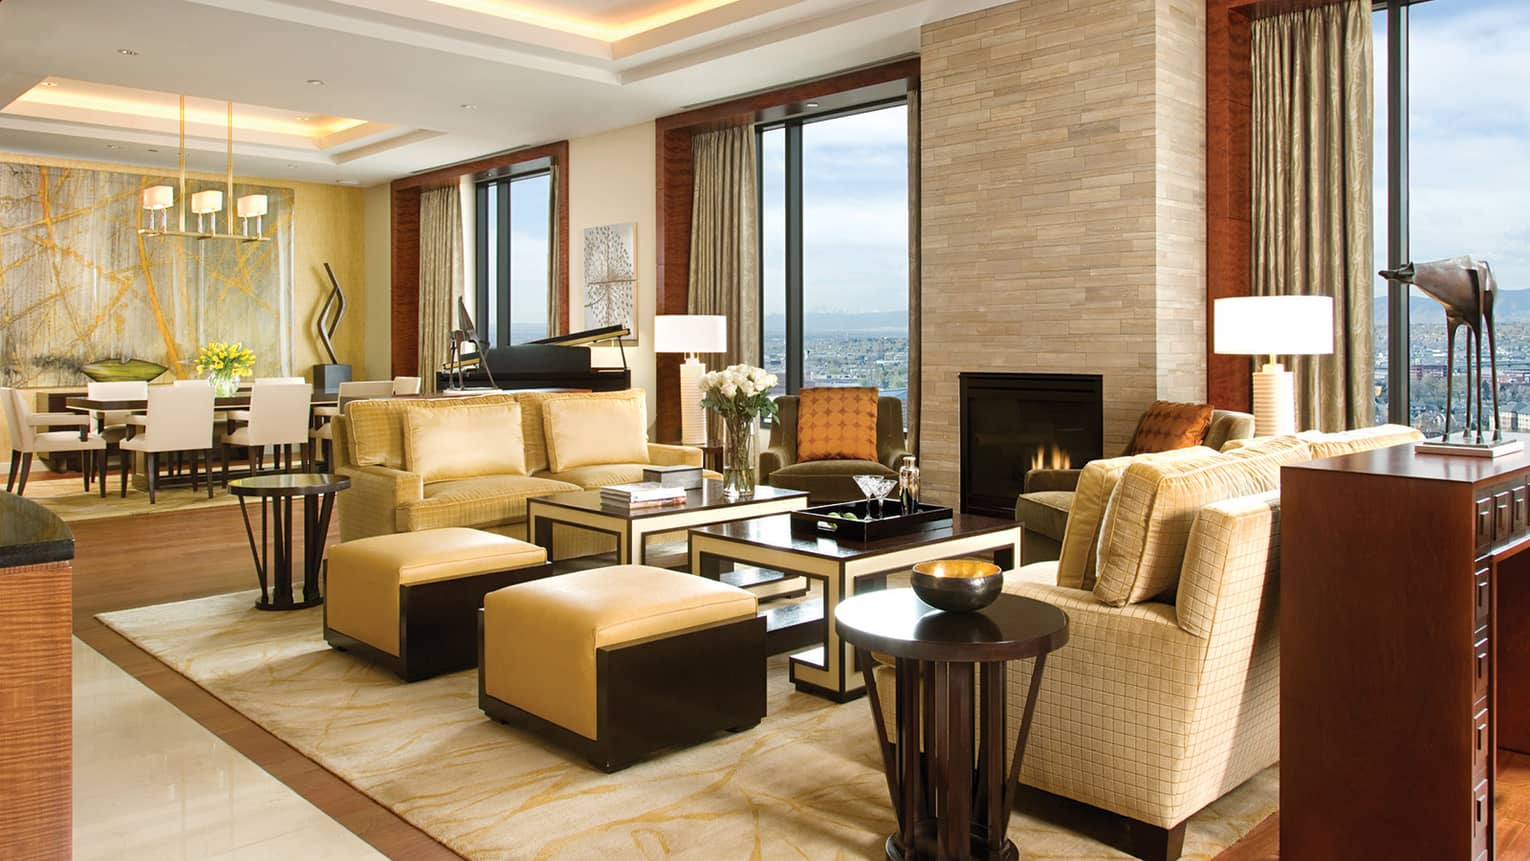 Presidential Suite large plush beige sofas, ottomans, table, fireplace, high ceilings, modern art